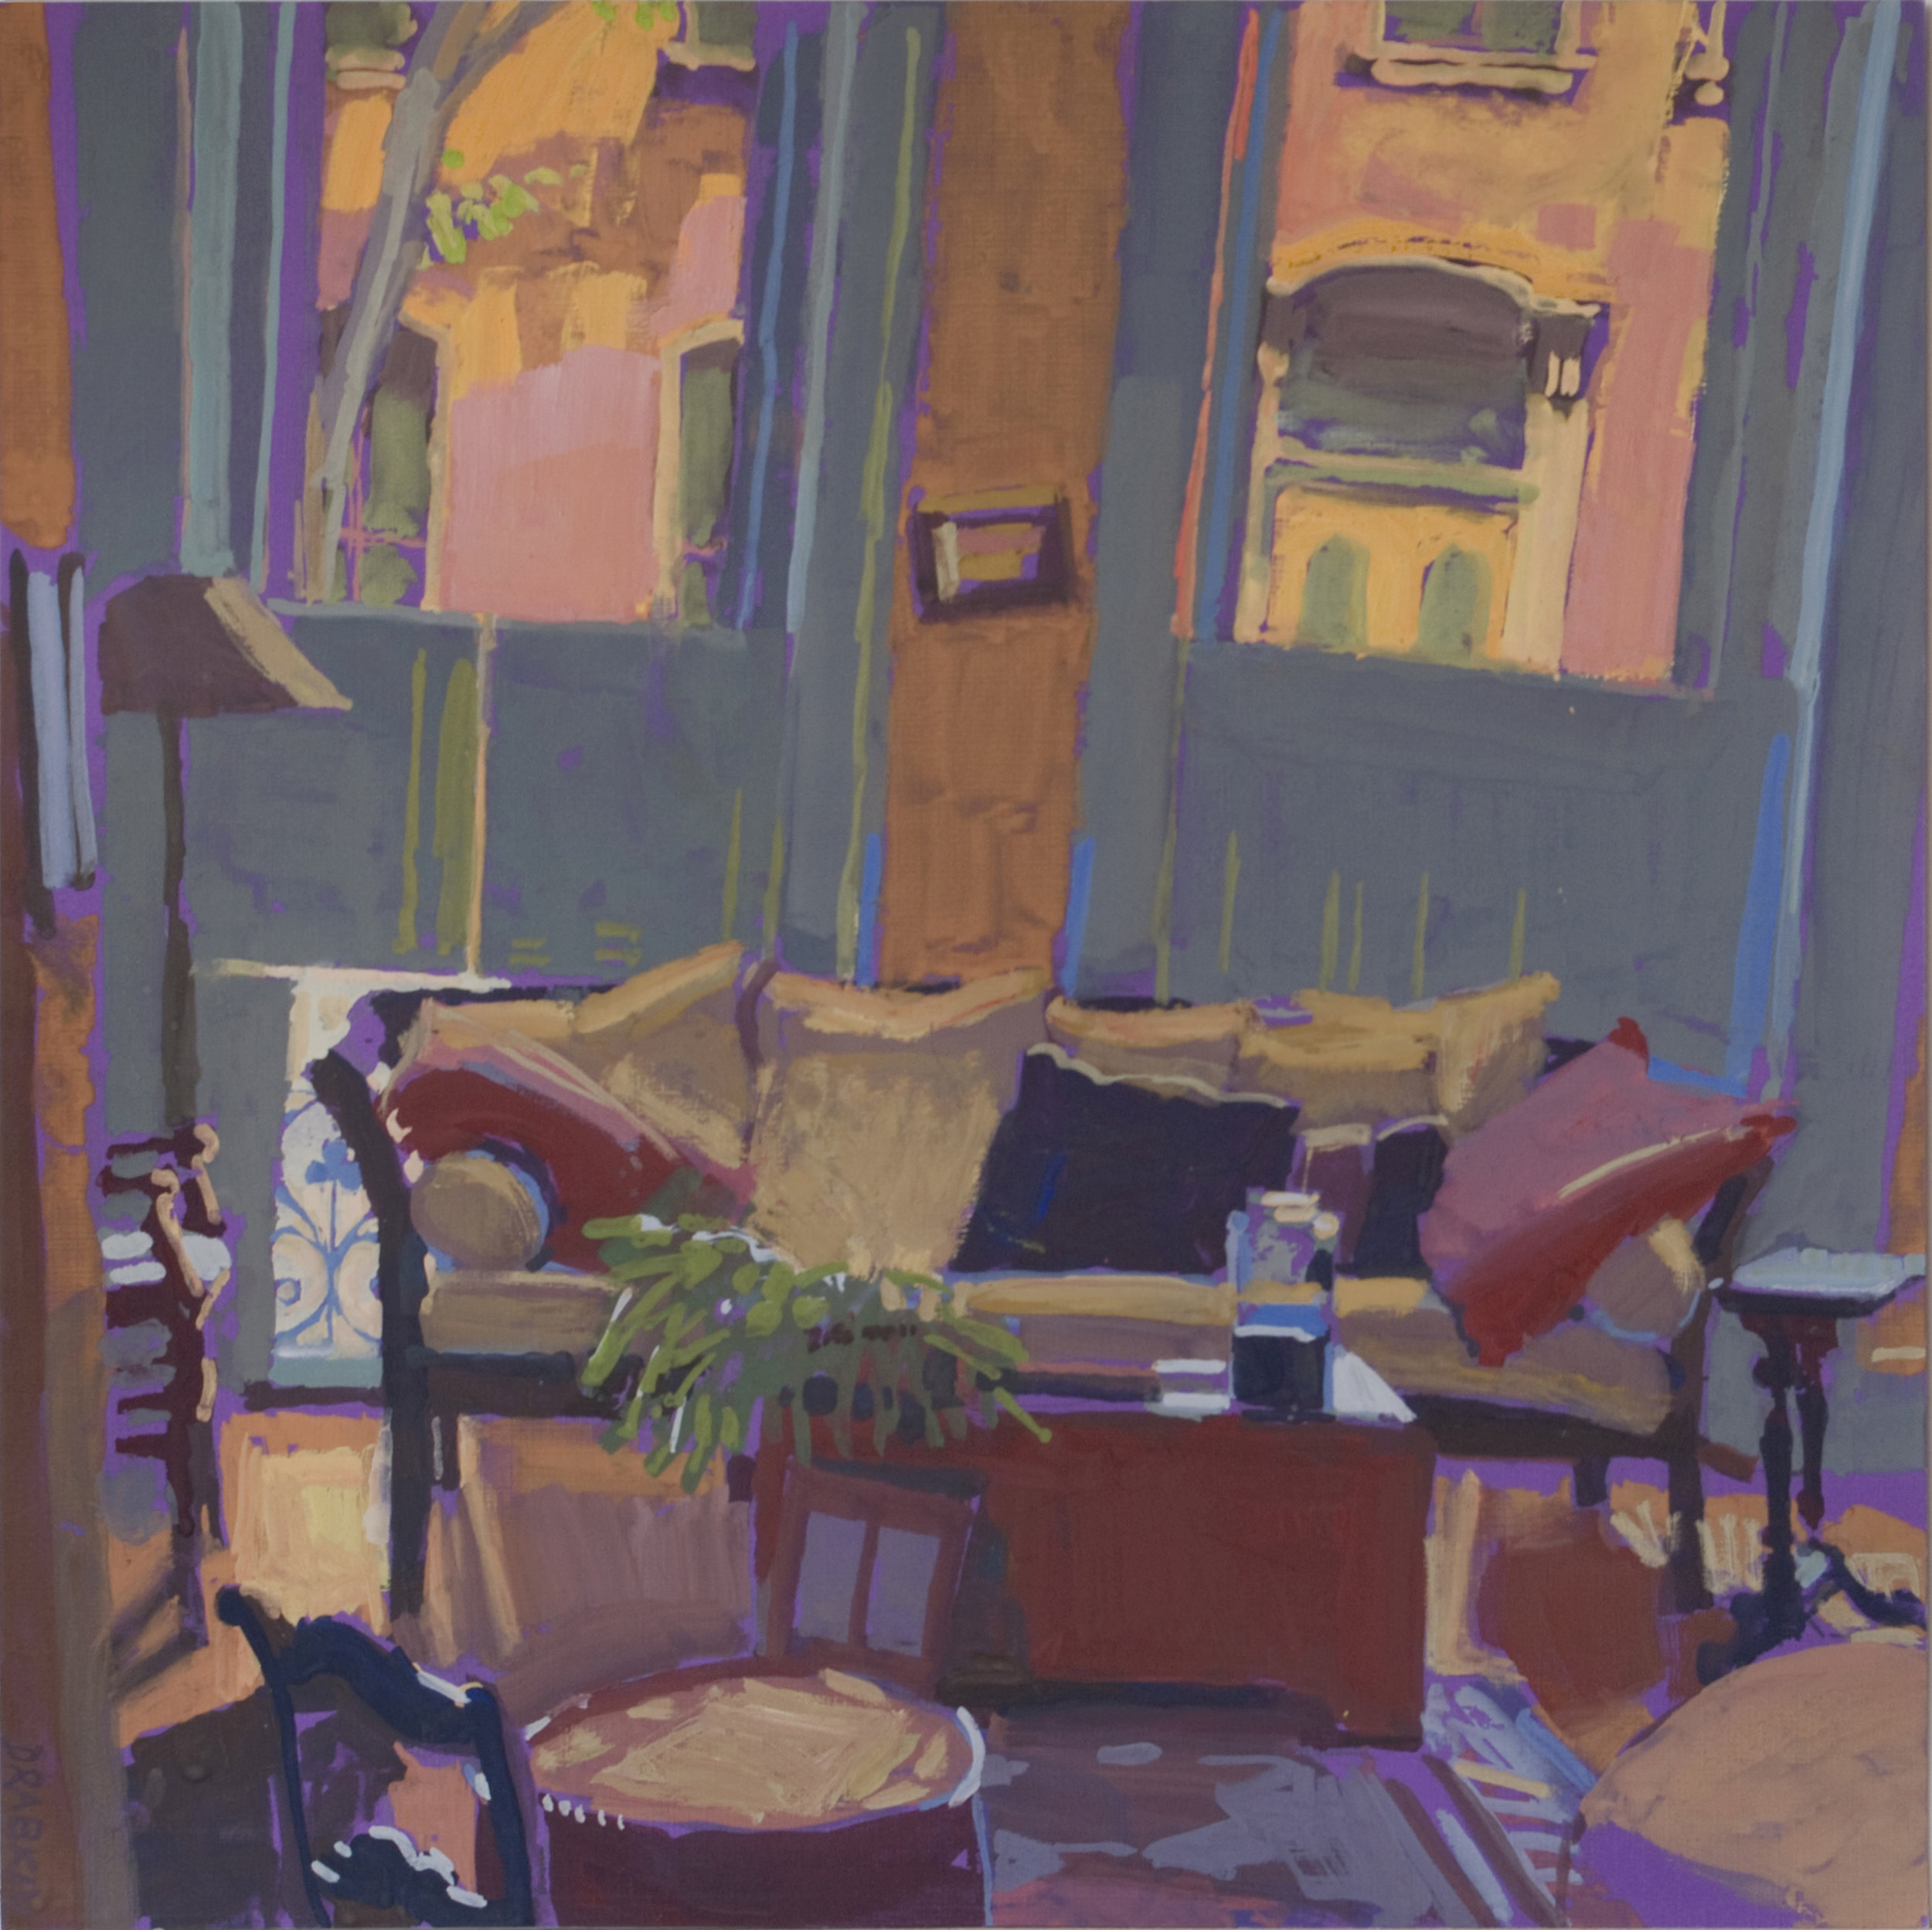 living room scene with a couch, lamp and two large windows.